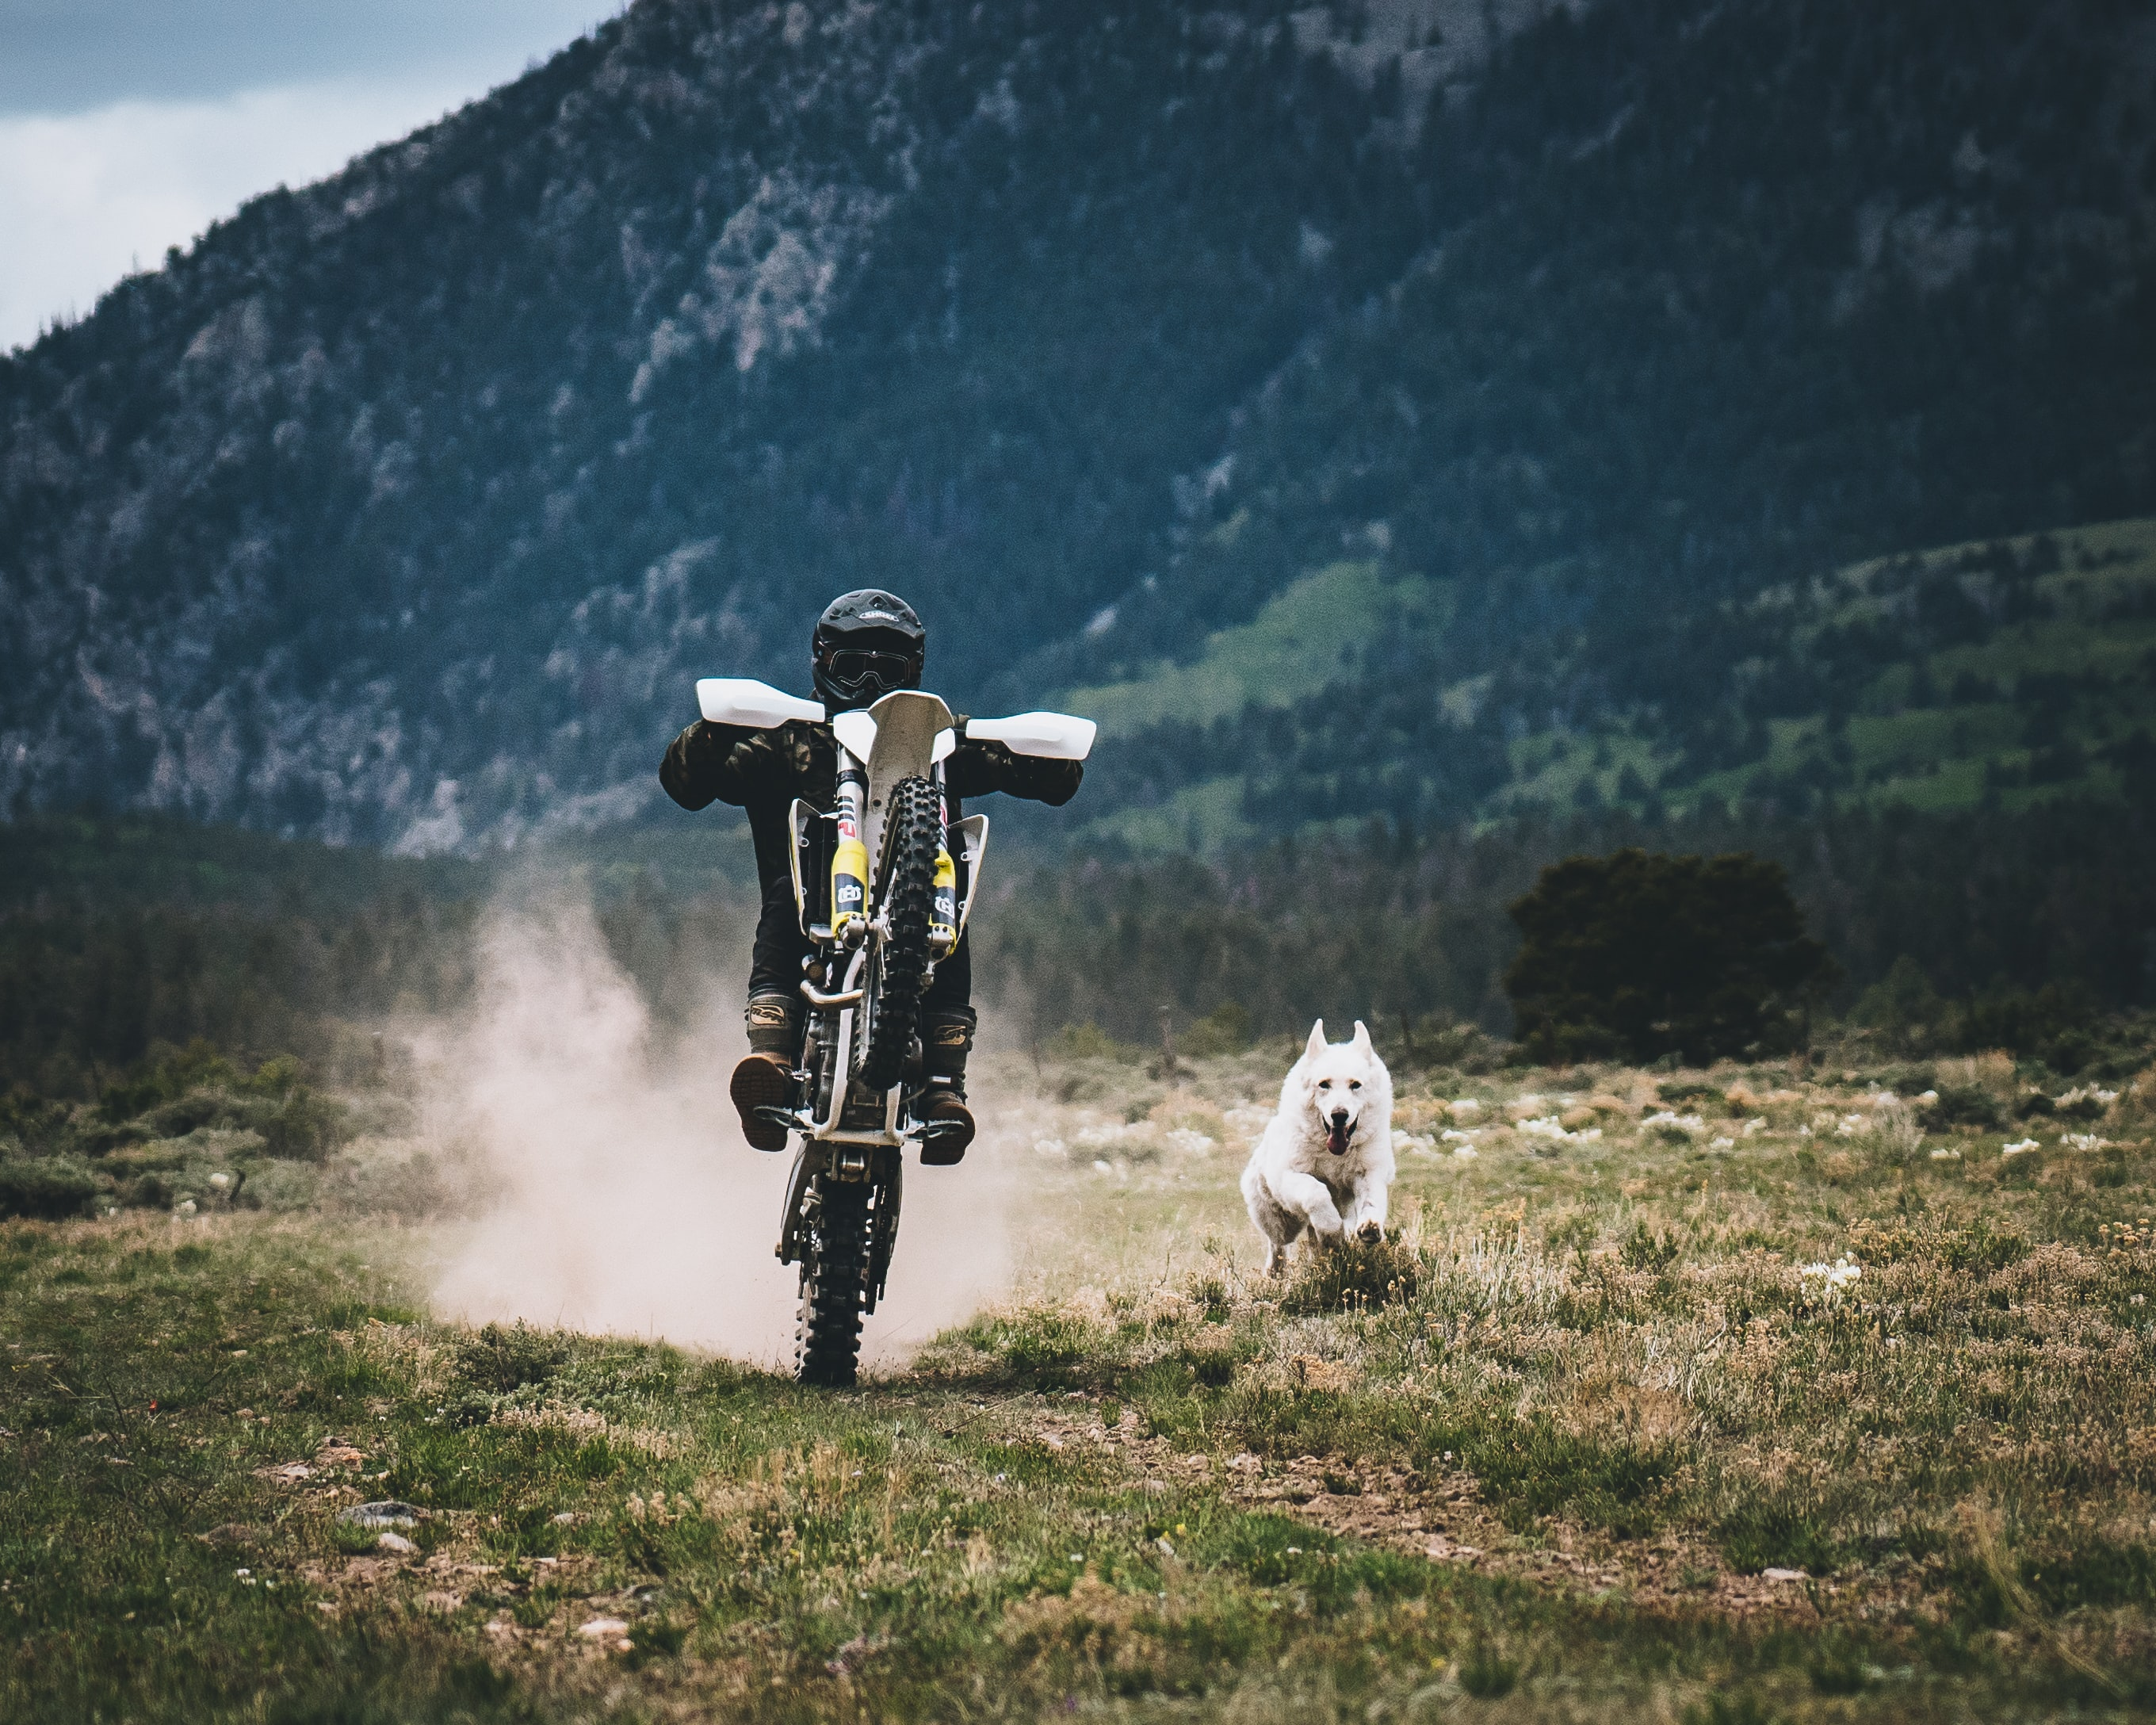 person playing motorcycle on green grass field with white dog